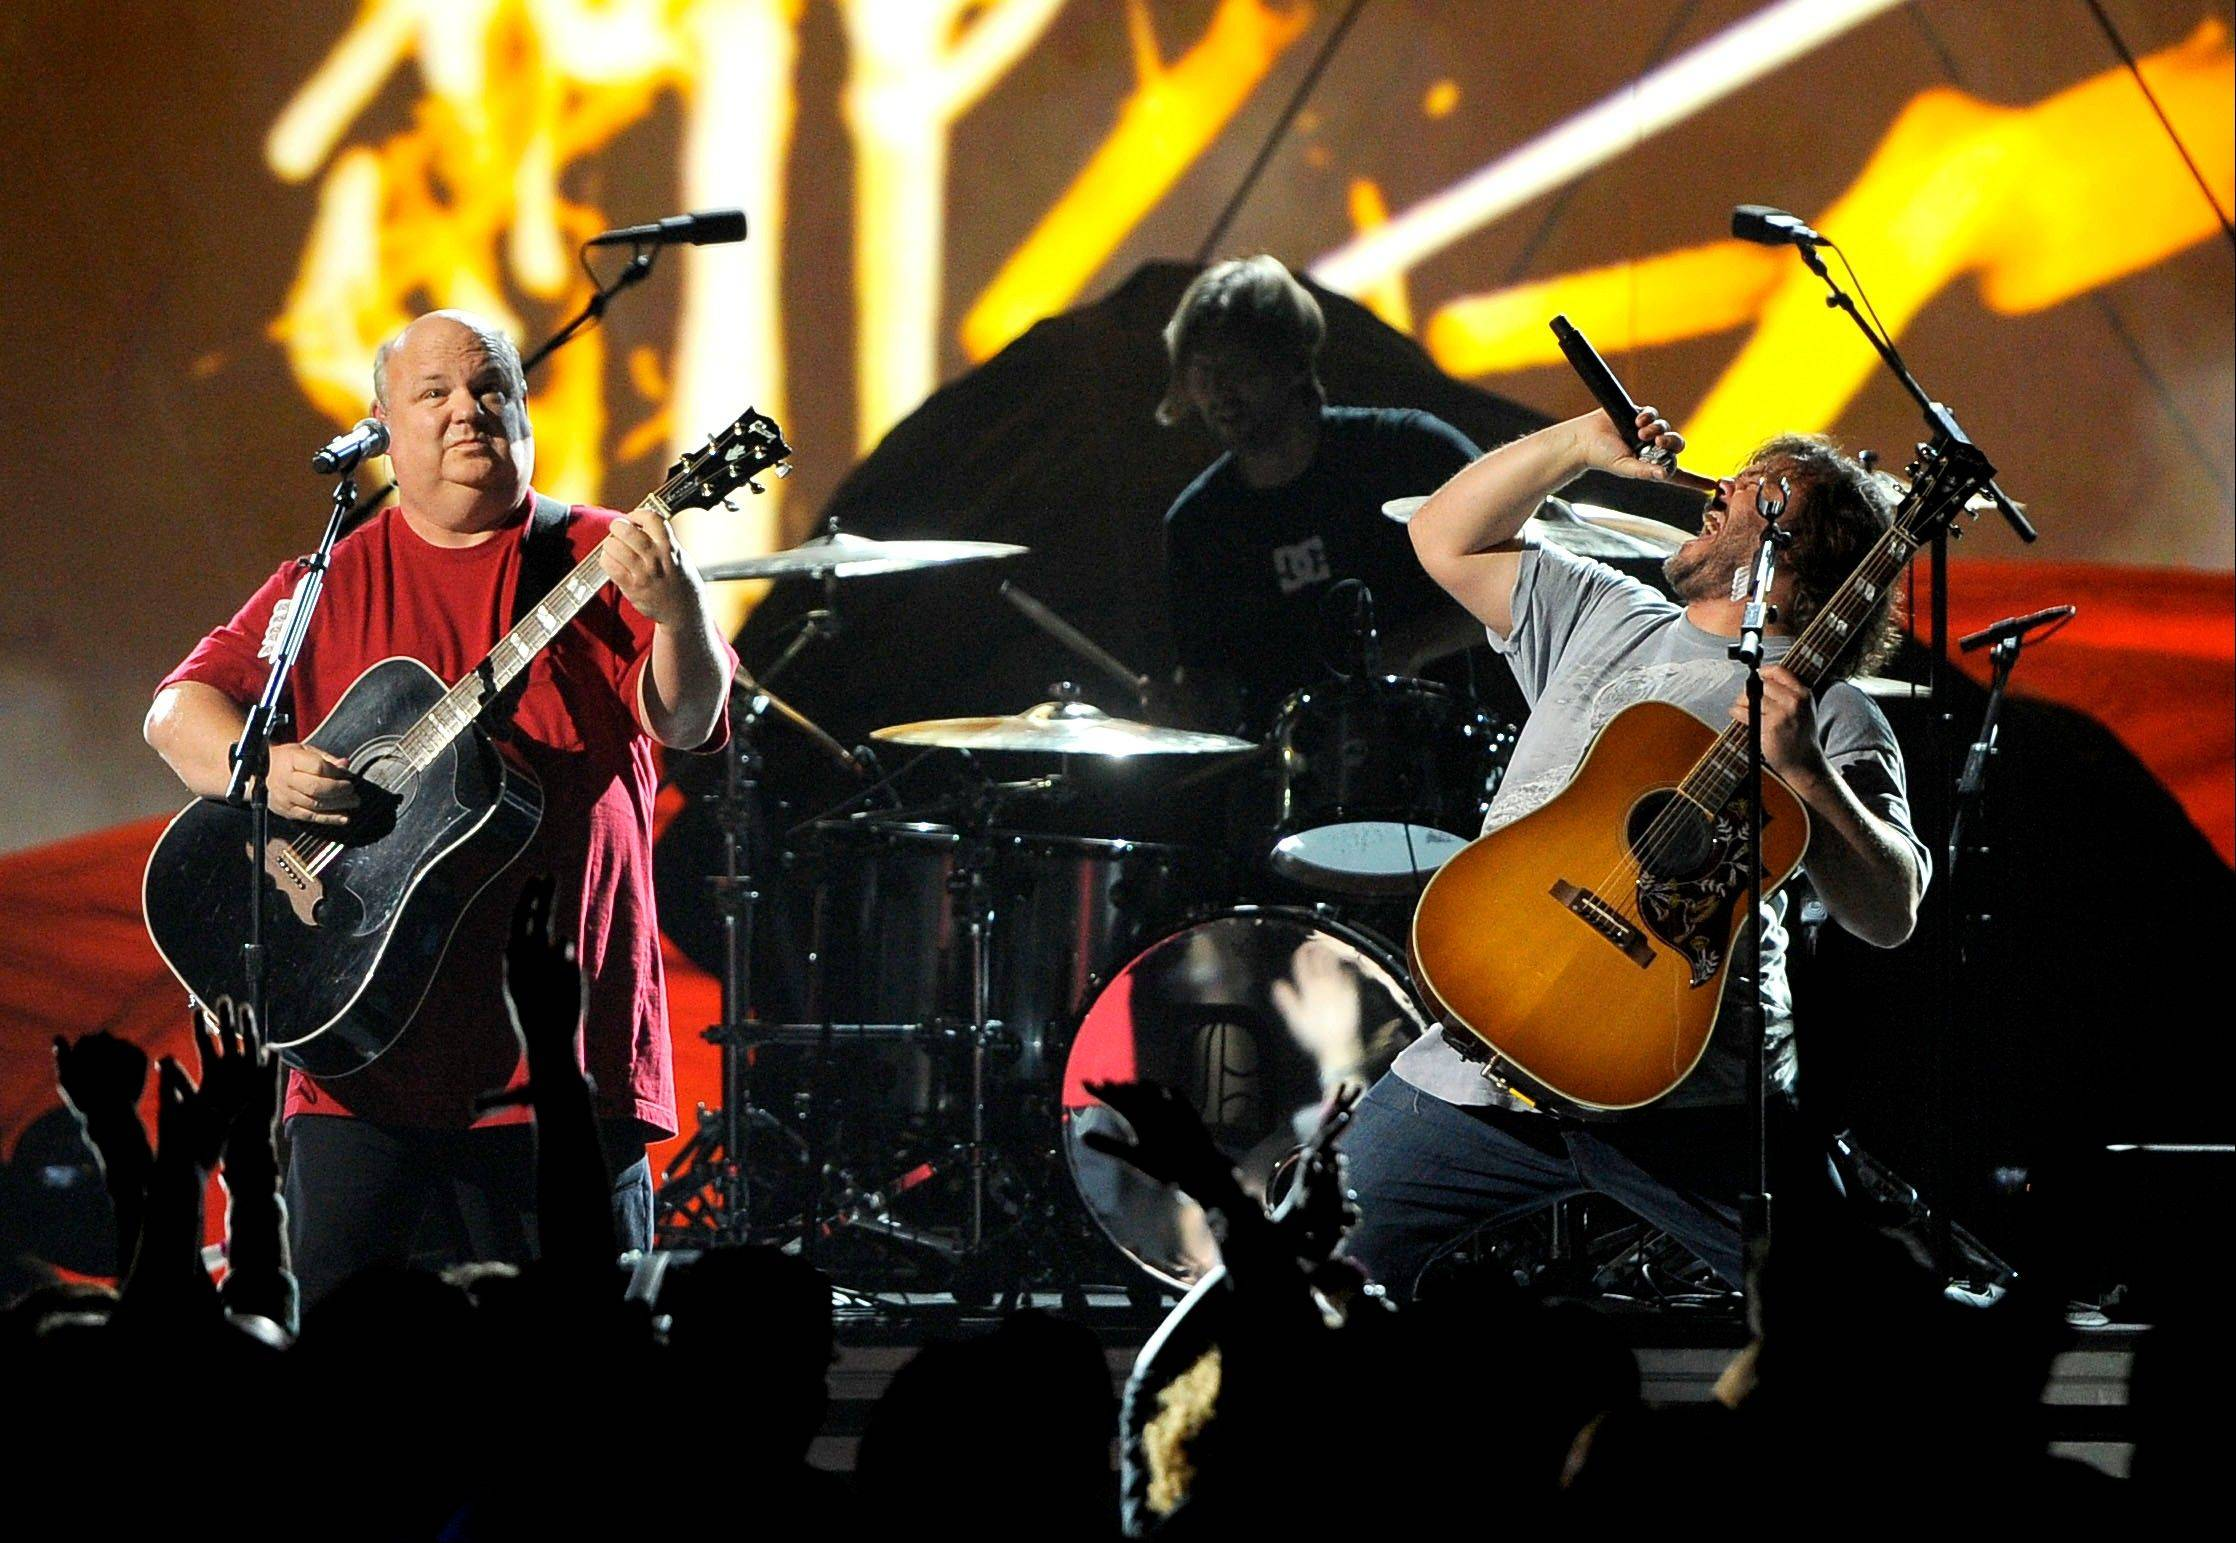 Kyle Gass, left, and Jack Black, of musical group Tenacious D, perform Friday at Spike's 10th Annual Video Game Awards at Sony Studios.